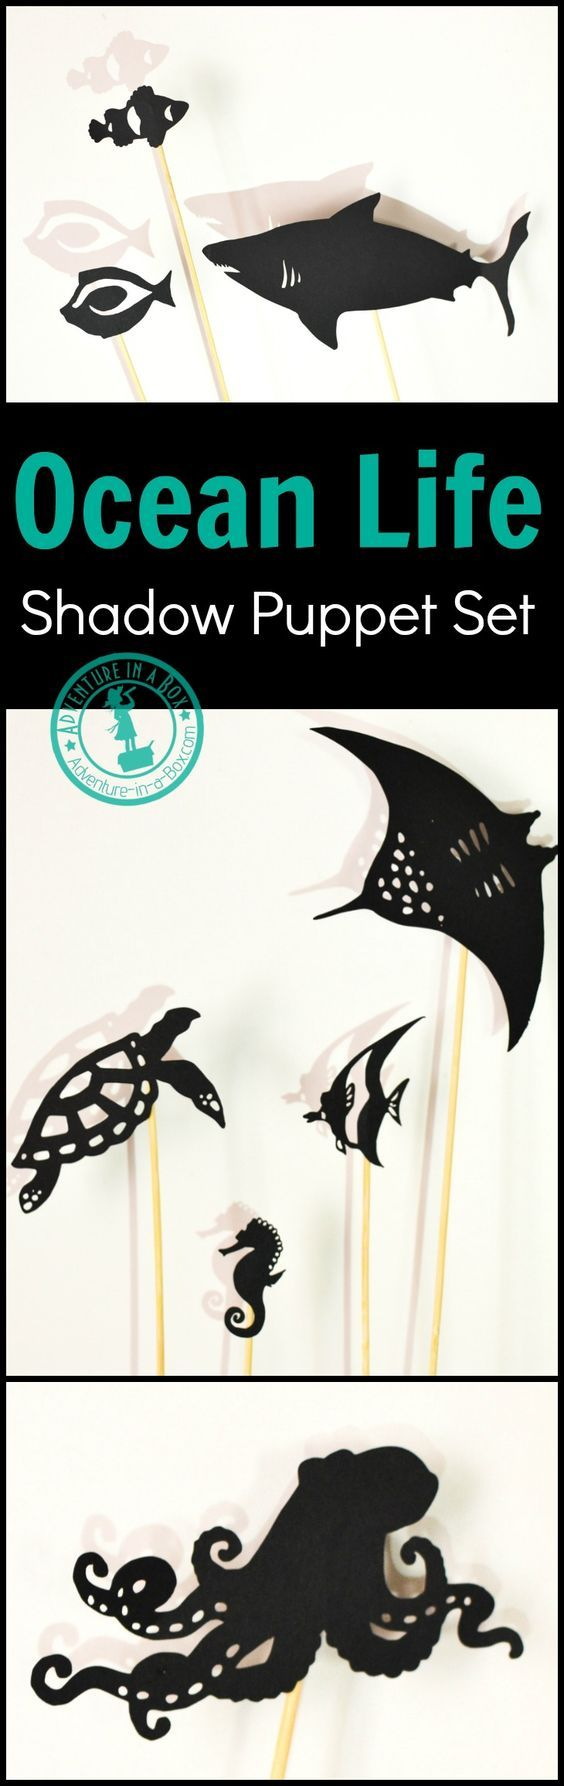 Print and cut your own set of ocean life shadow puppets! Great for studying coral reefs with kids, as well as Finding Nemo or Finding Dory party ideas.